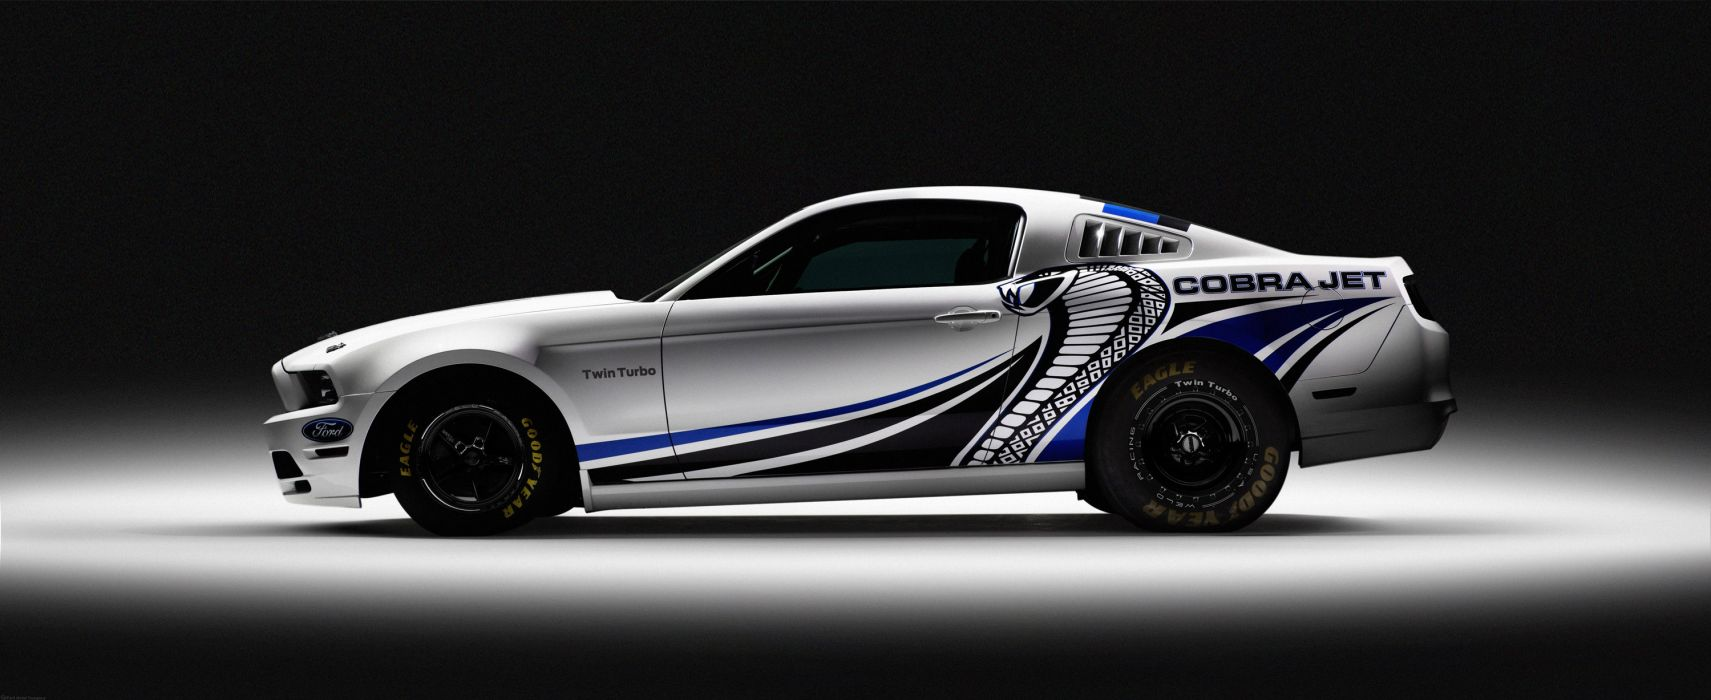 2013 Ford Mustang Cobra Jet Twin-Turbo Concept race racing hot rod rods muscle o wallpaper